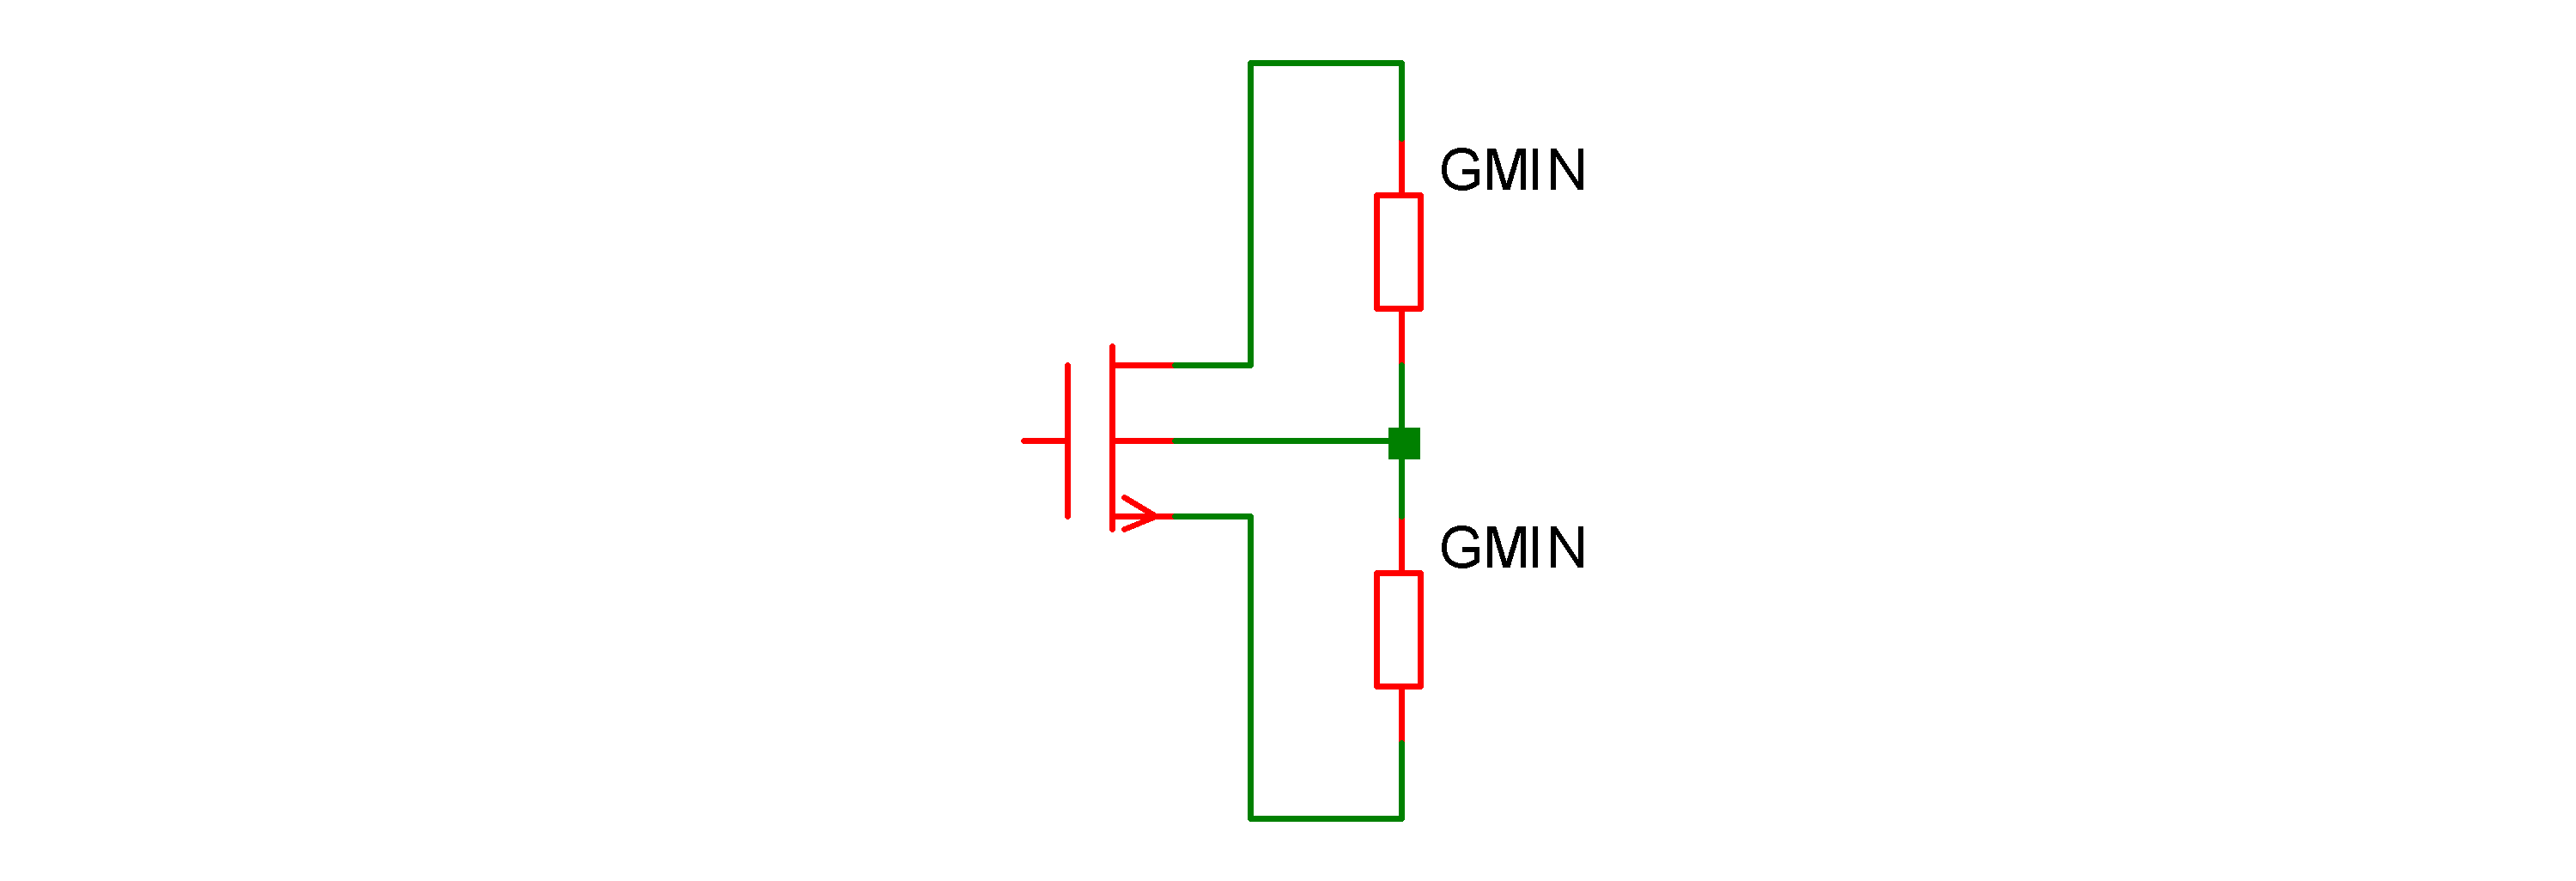 Simulator Reference: MOSFET GMIN Implementation